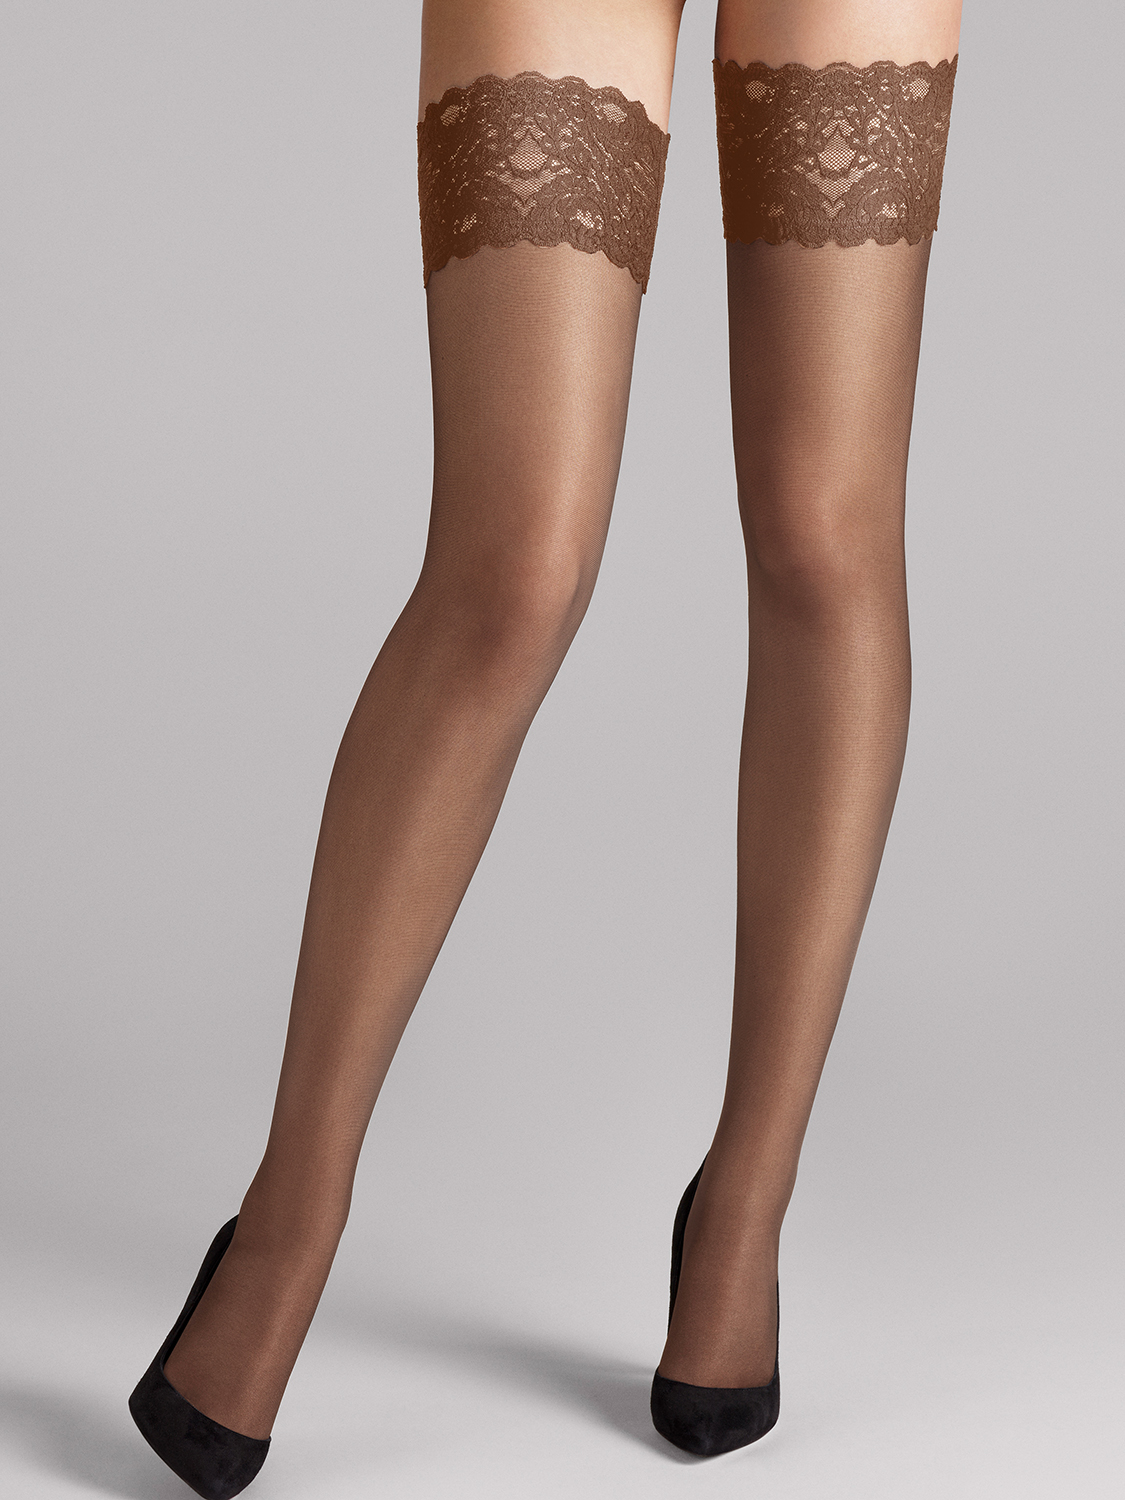 Satin Touch 20 Чулки от Wolford